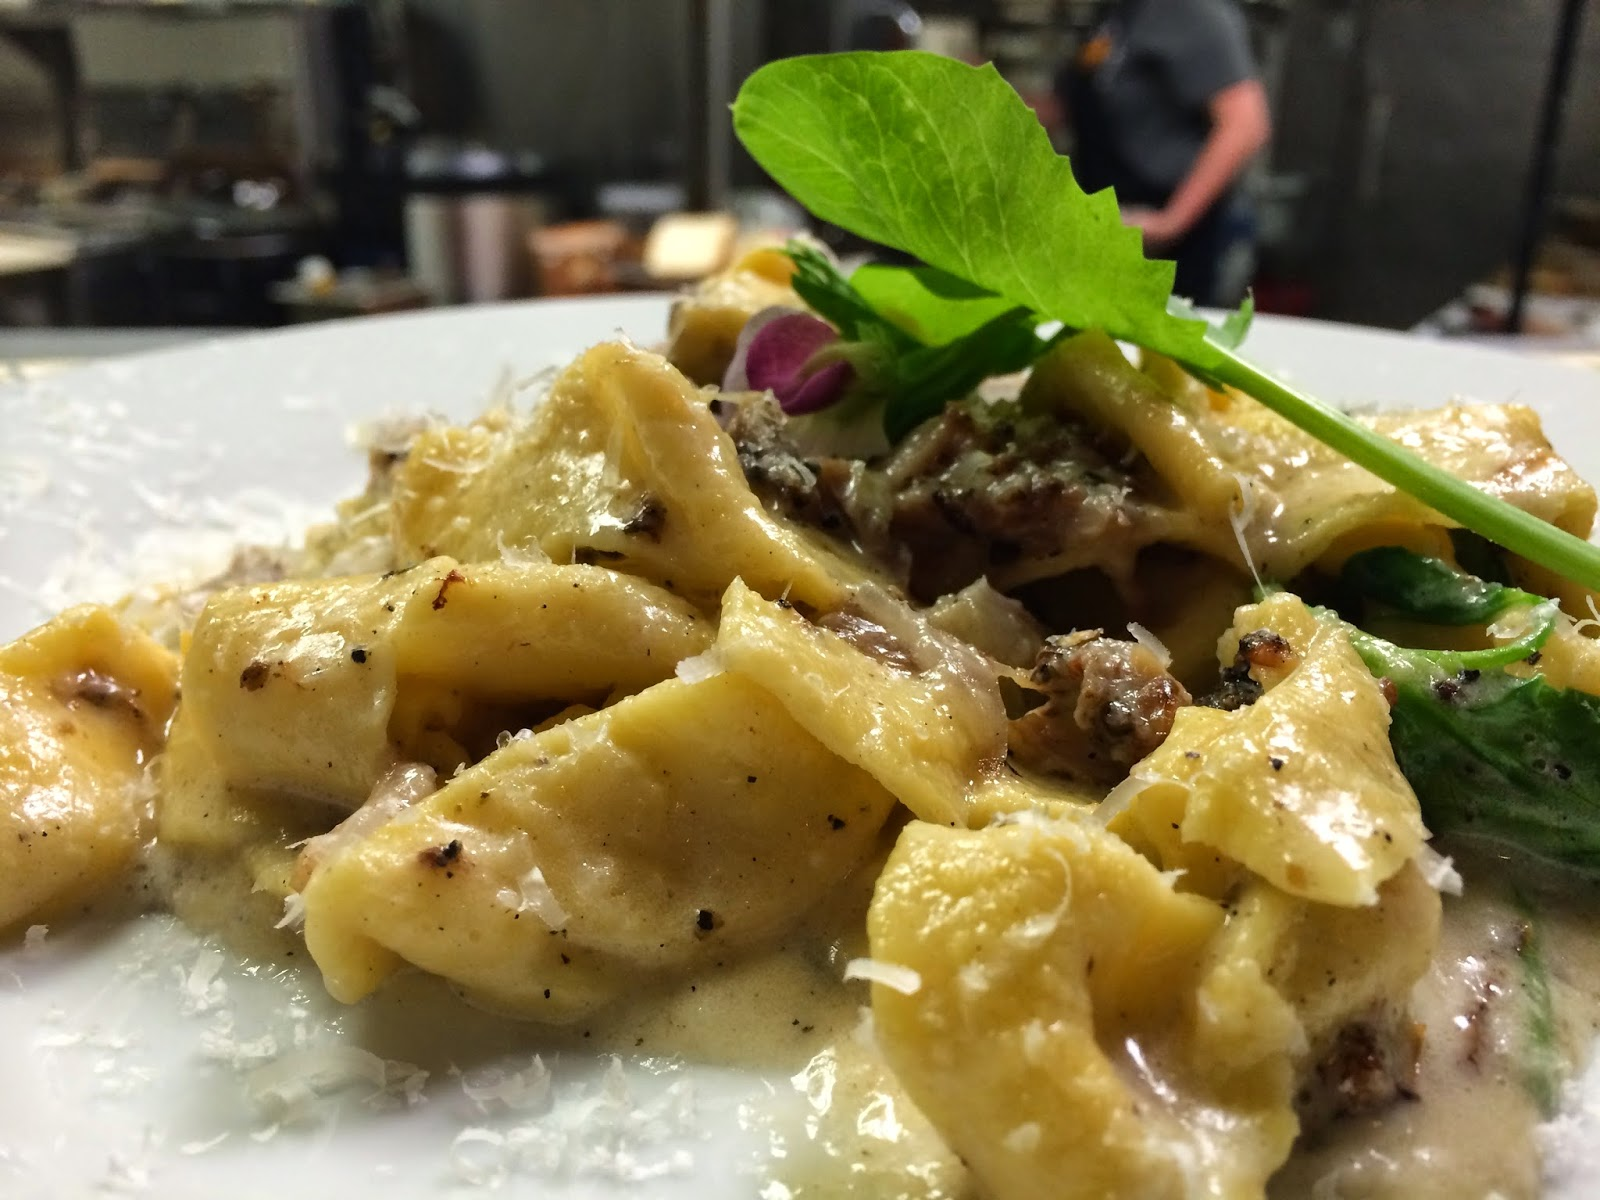 House-Made Pasta* Carbonara: Pork Cheek, Black Pepper Butter, Pea Shoots, Goat's Milk Cheddar, and Toasted Breadcrumbs. *Pasta Noodles made Fresh to order.